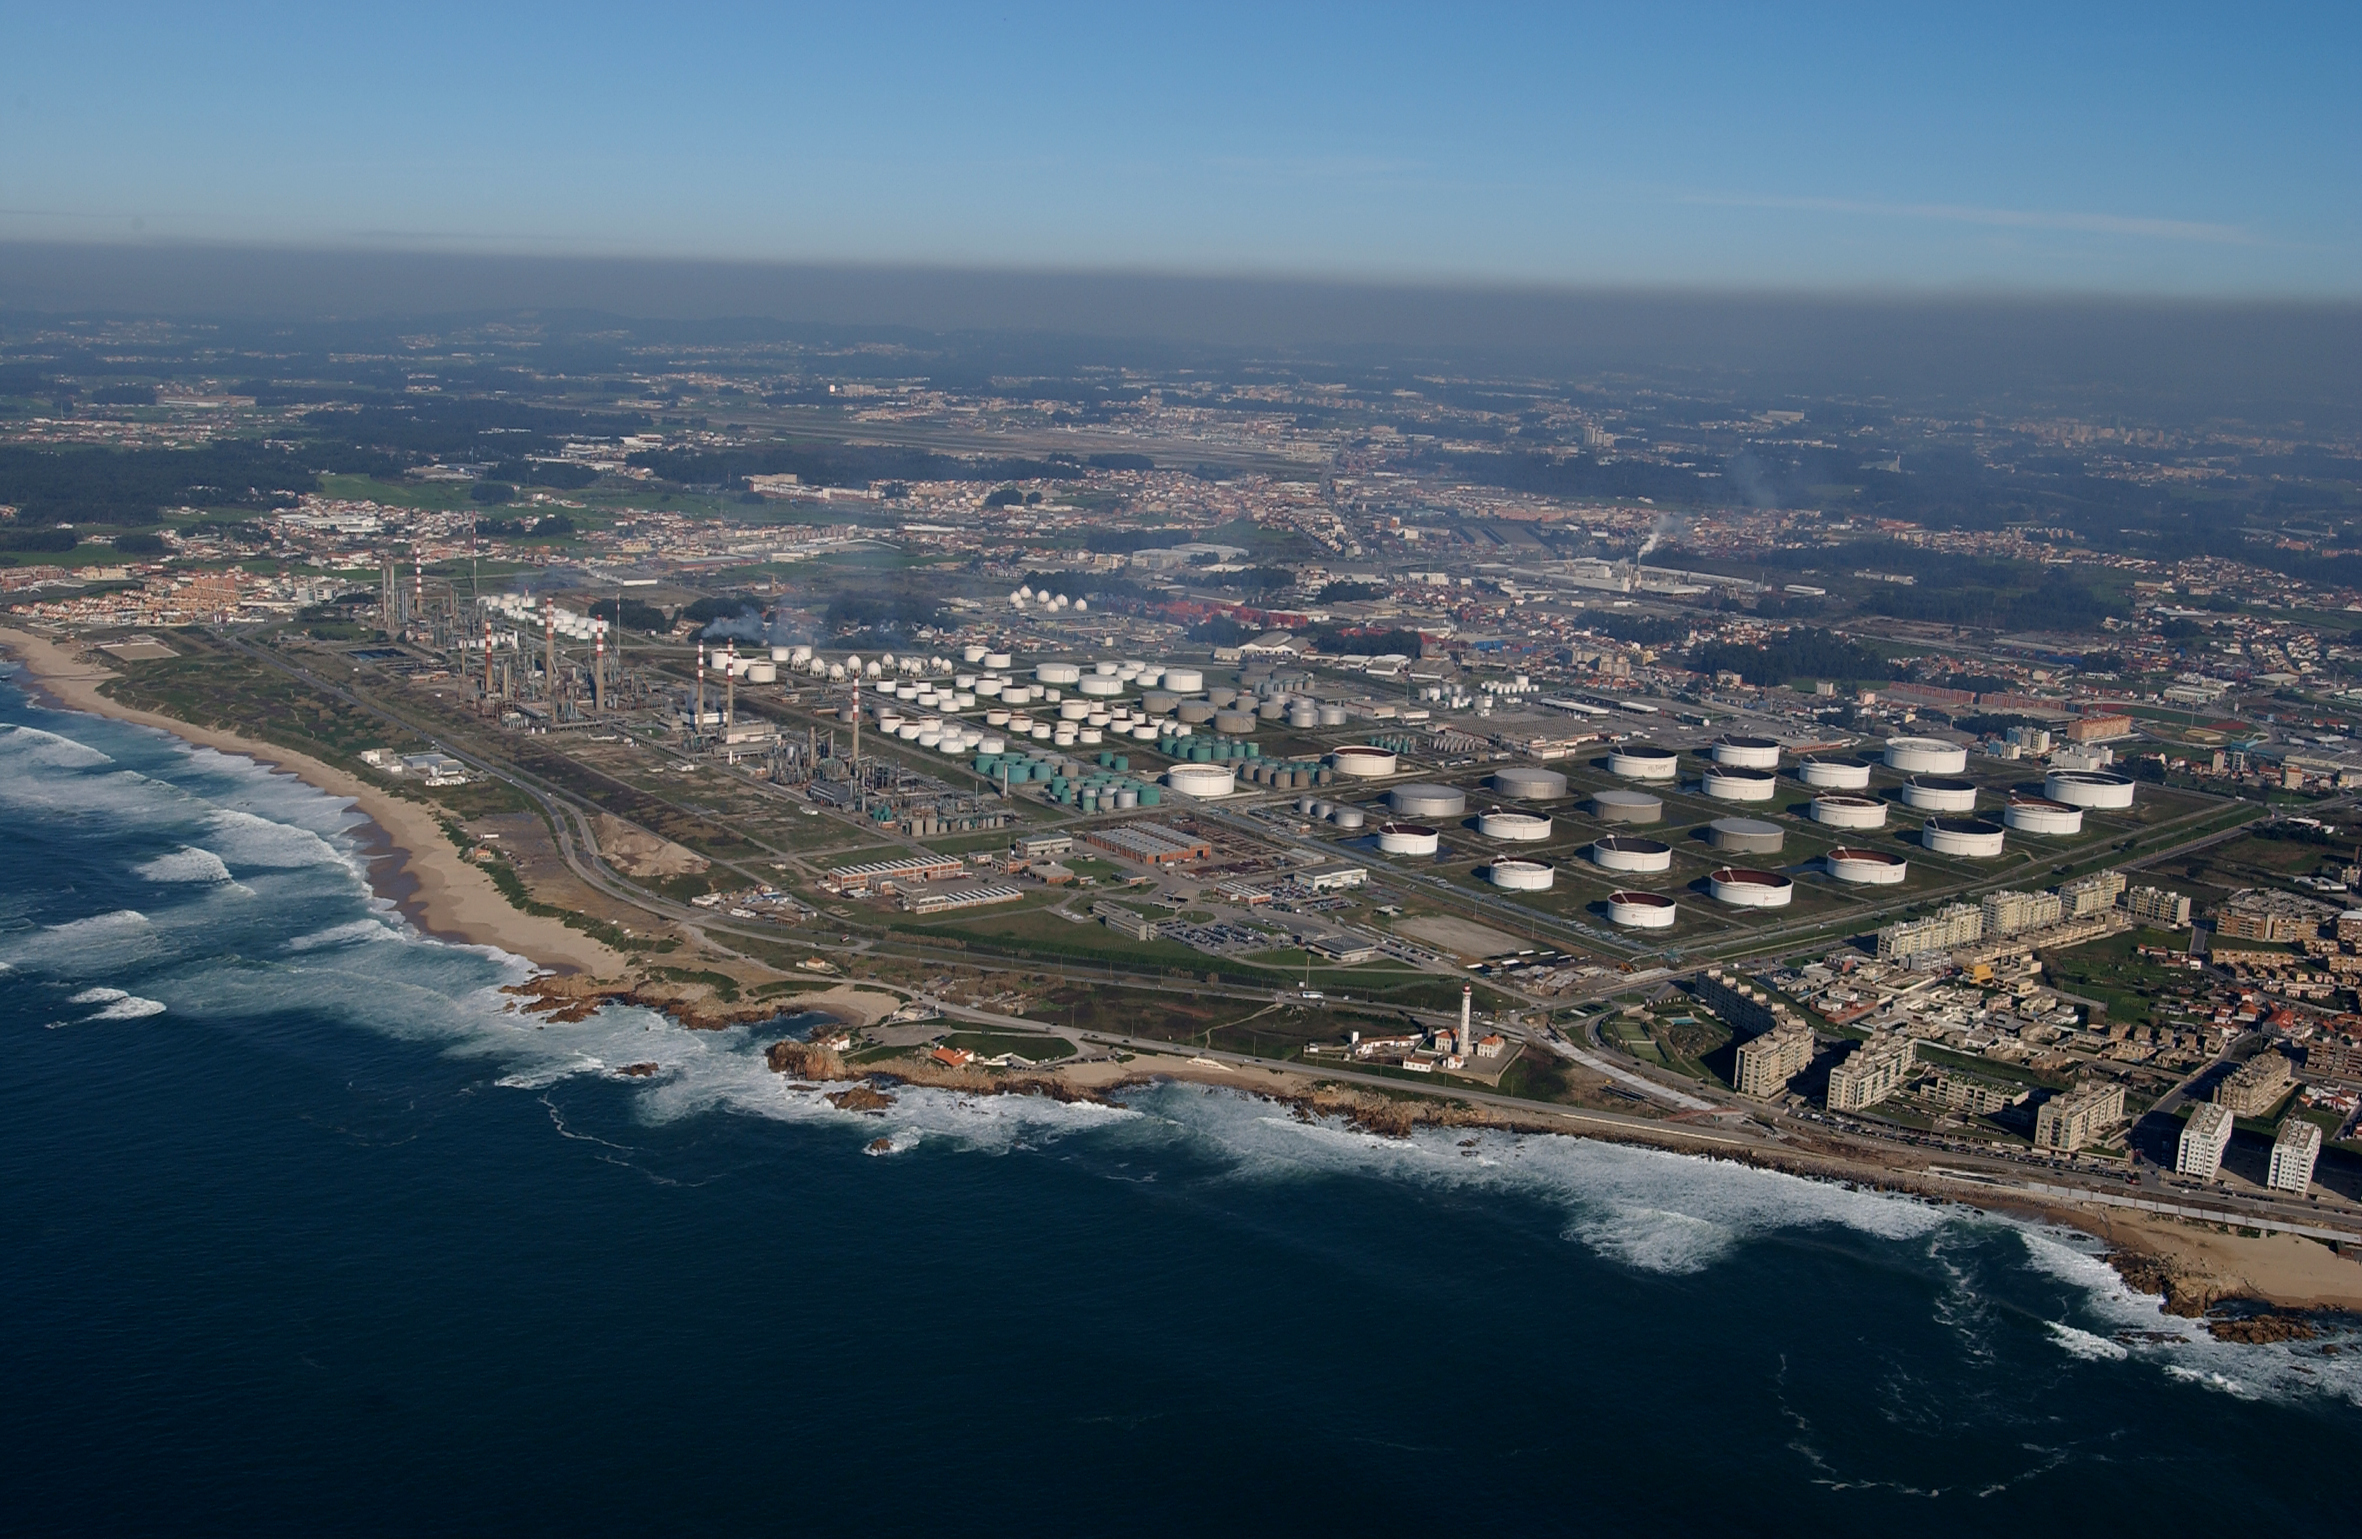 An aerial view of the Matoshinhos refinery run by Galp Energia. Pic: Galp Energia